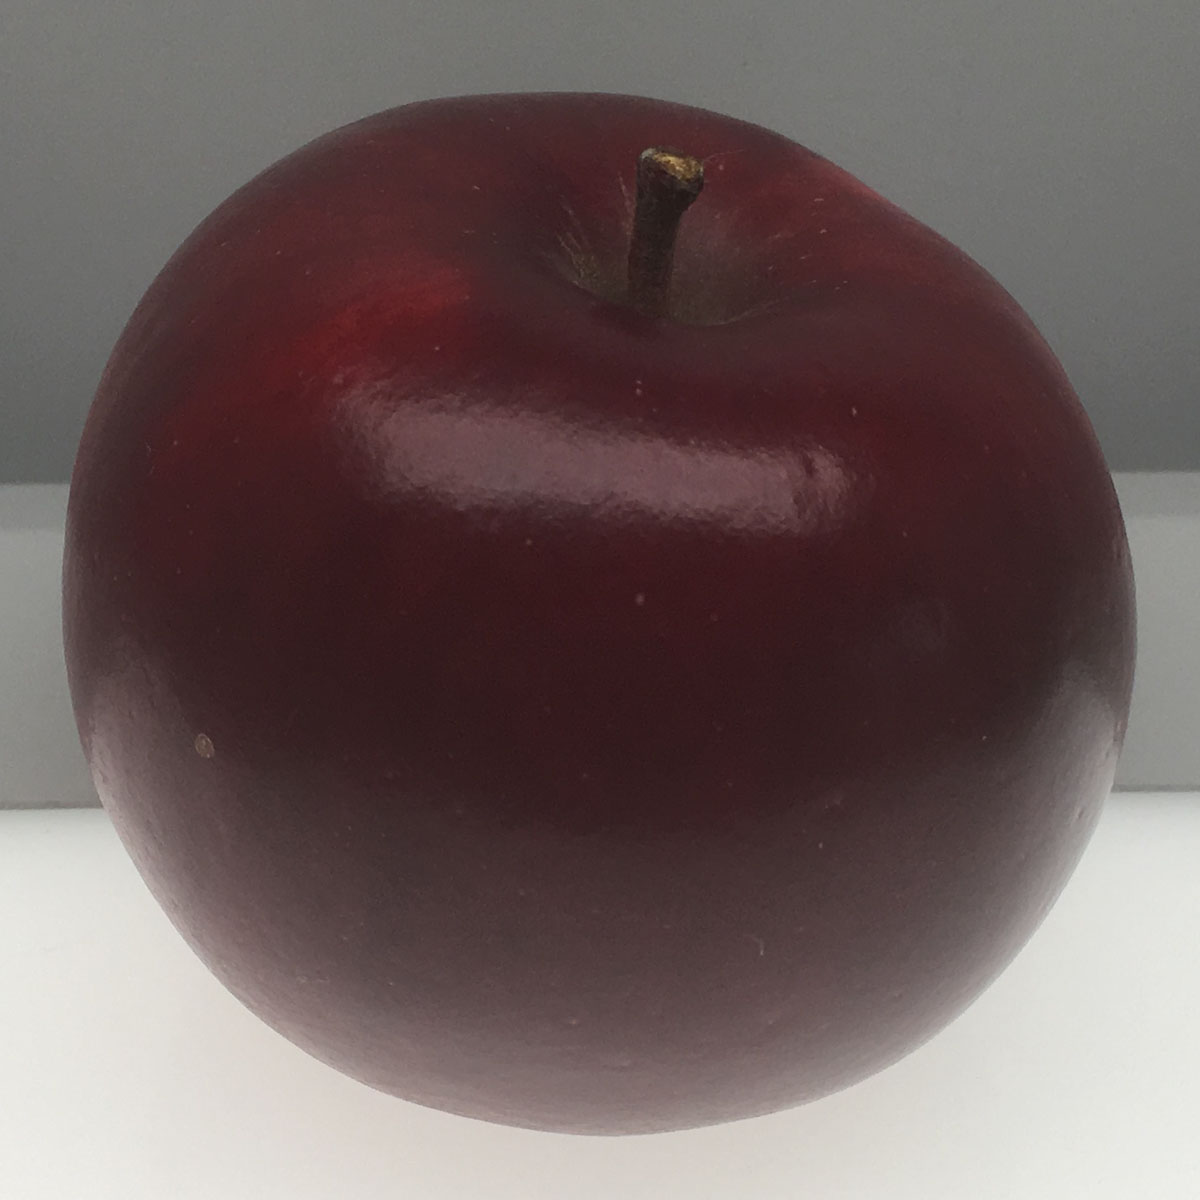 Gernes Red Acre apple